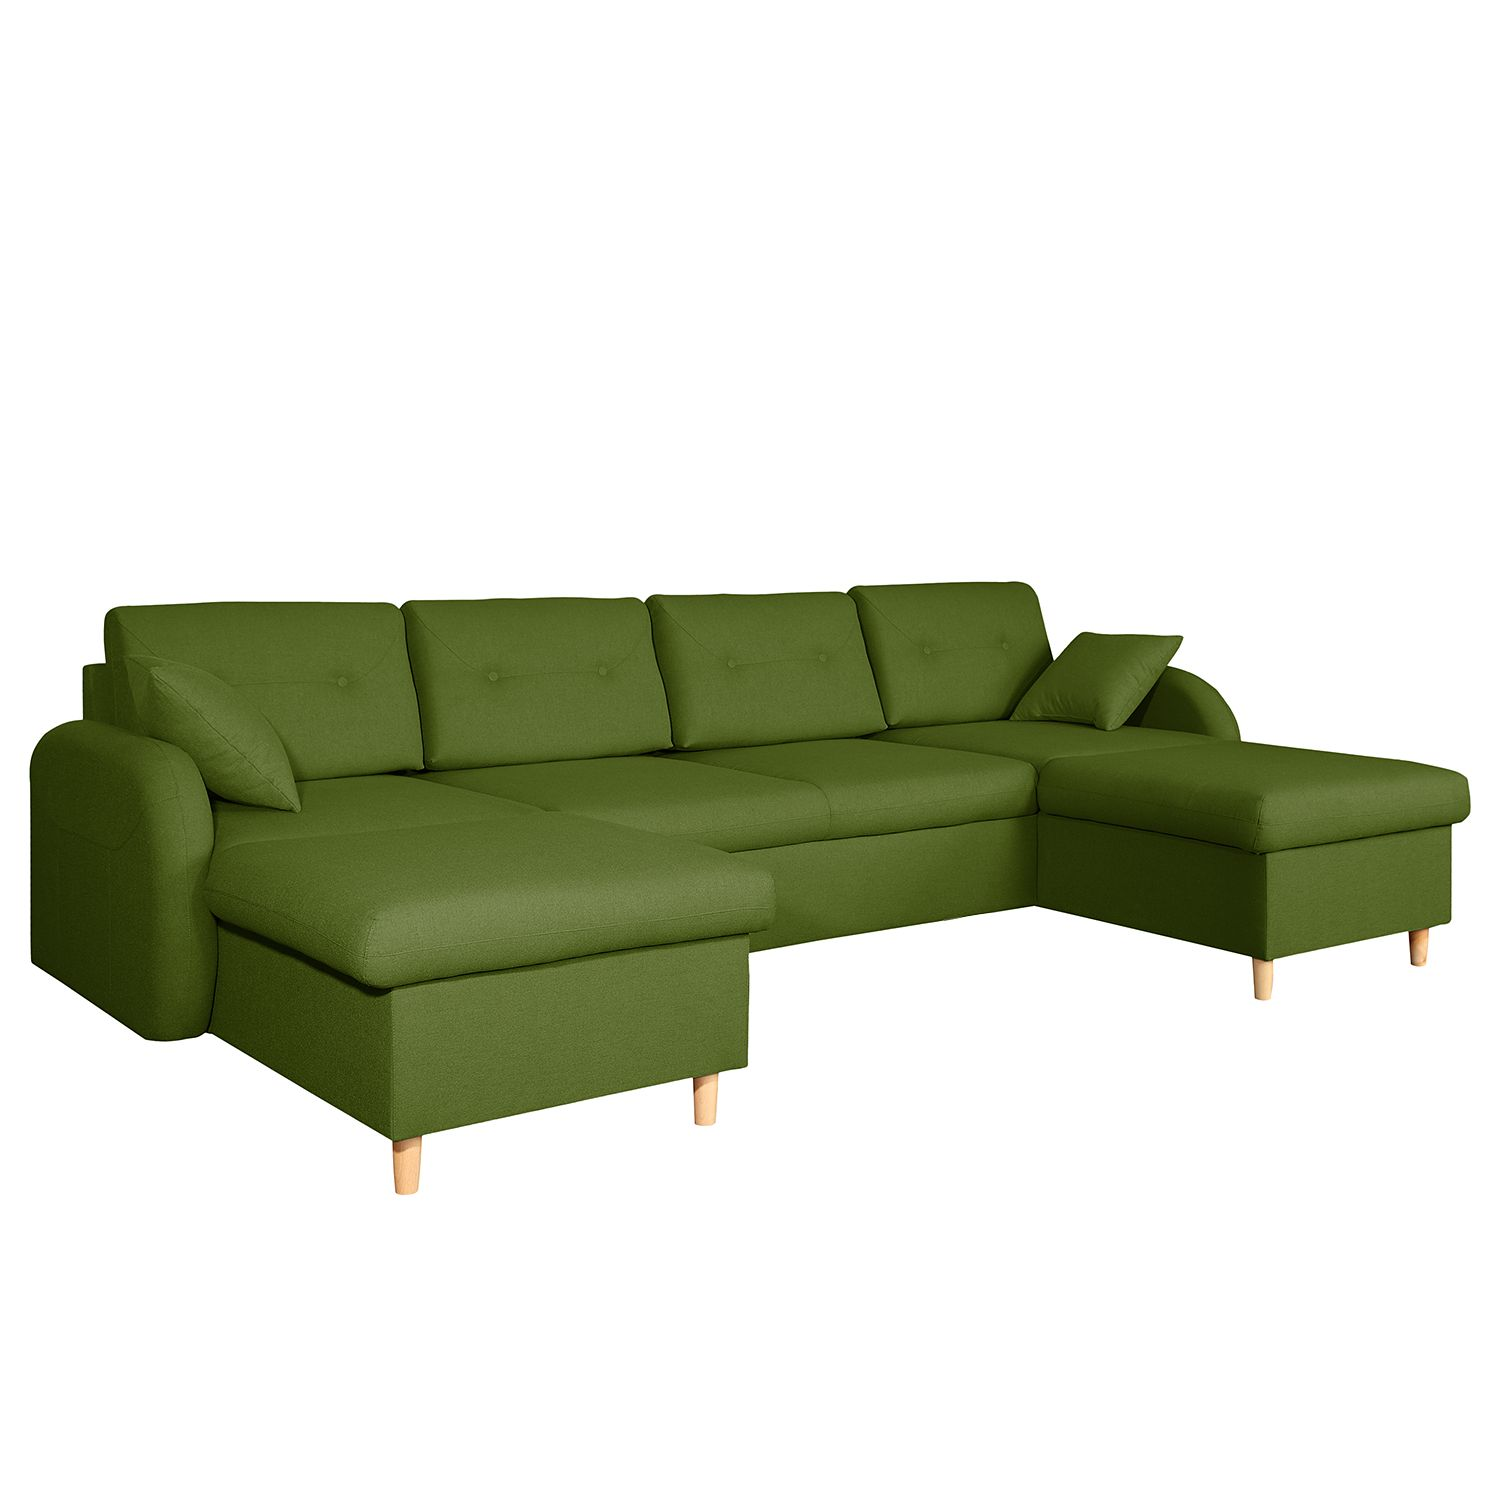 Bobochic Ecksofa Helly Eurocomparateur Fr